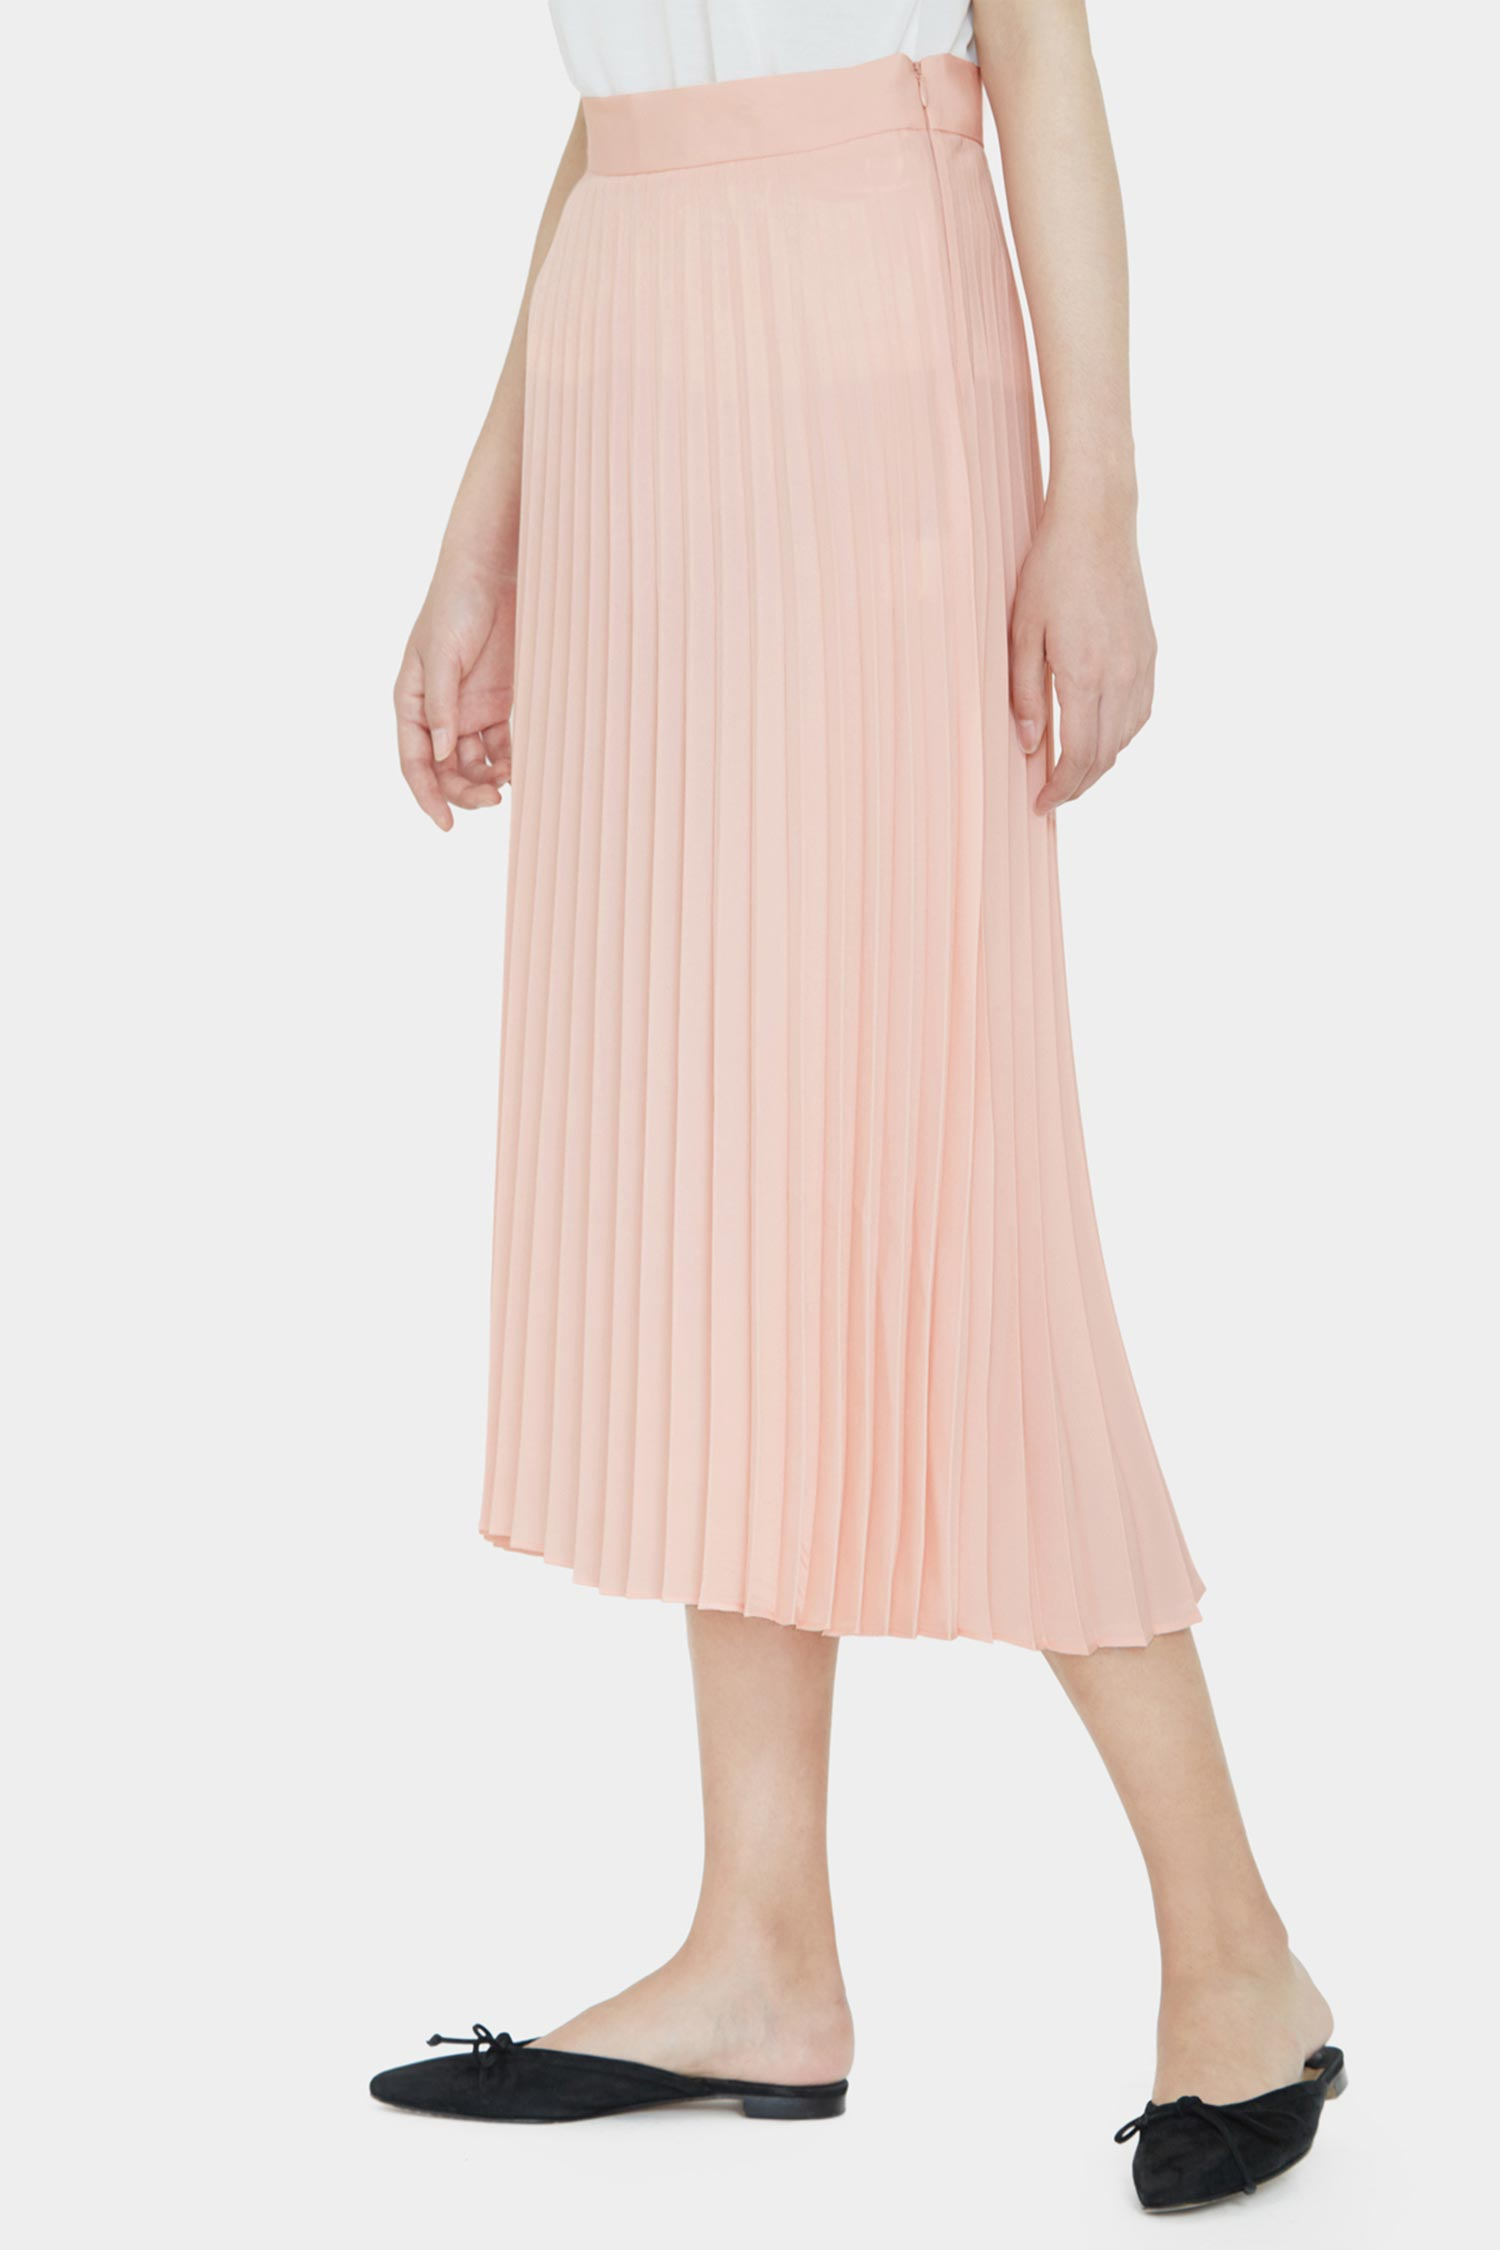 BABY PINK LILY PLEATED TAILORED SKIRTS